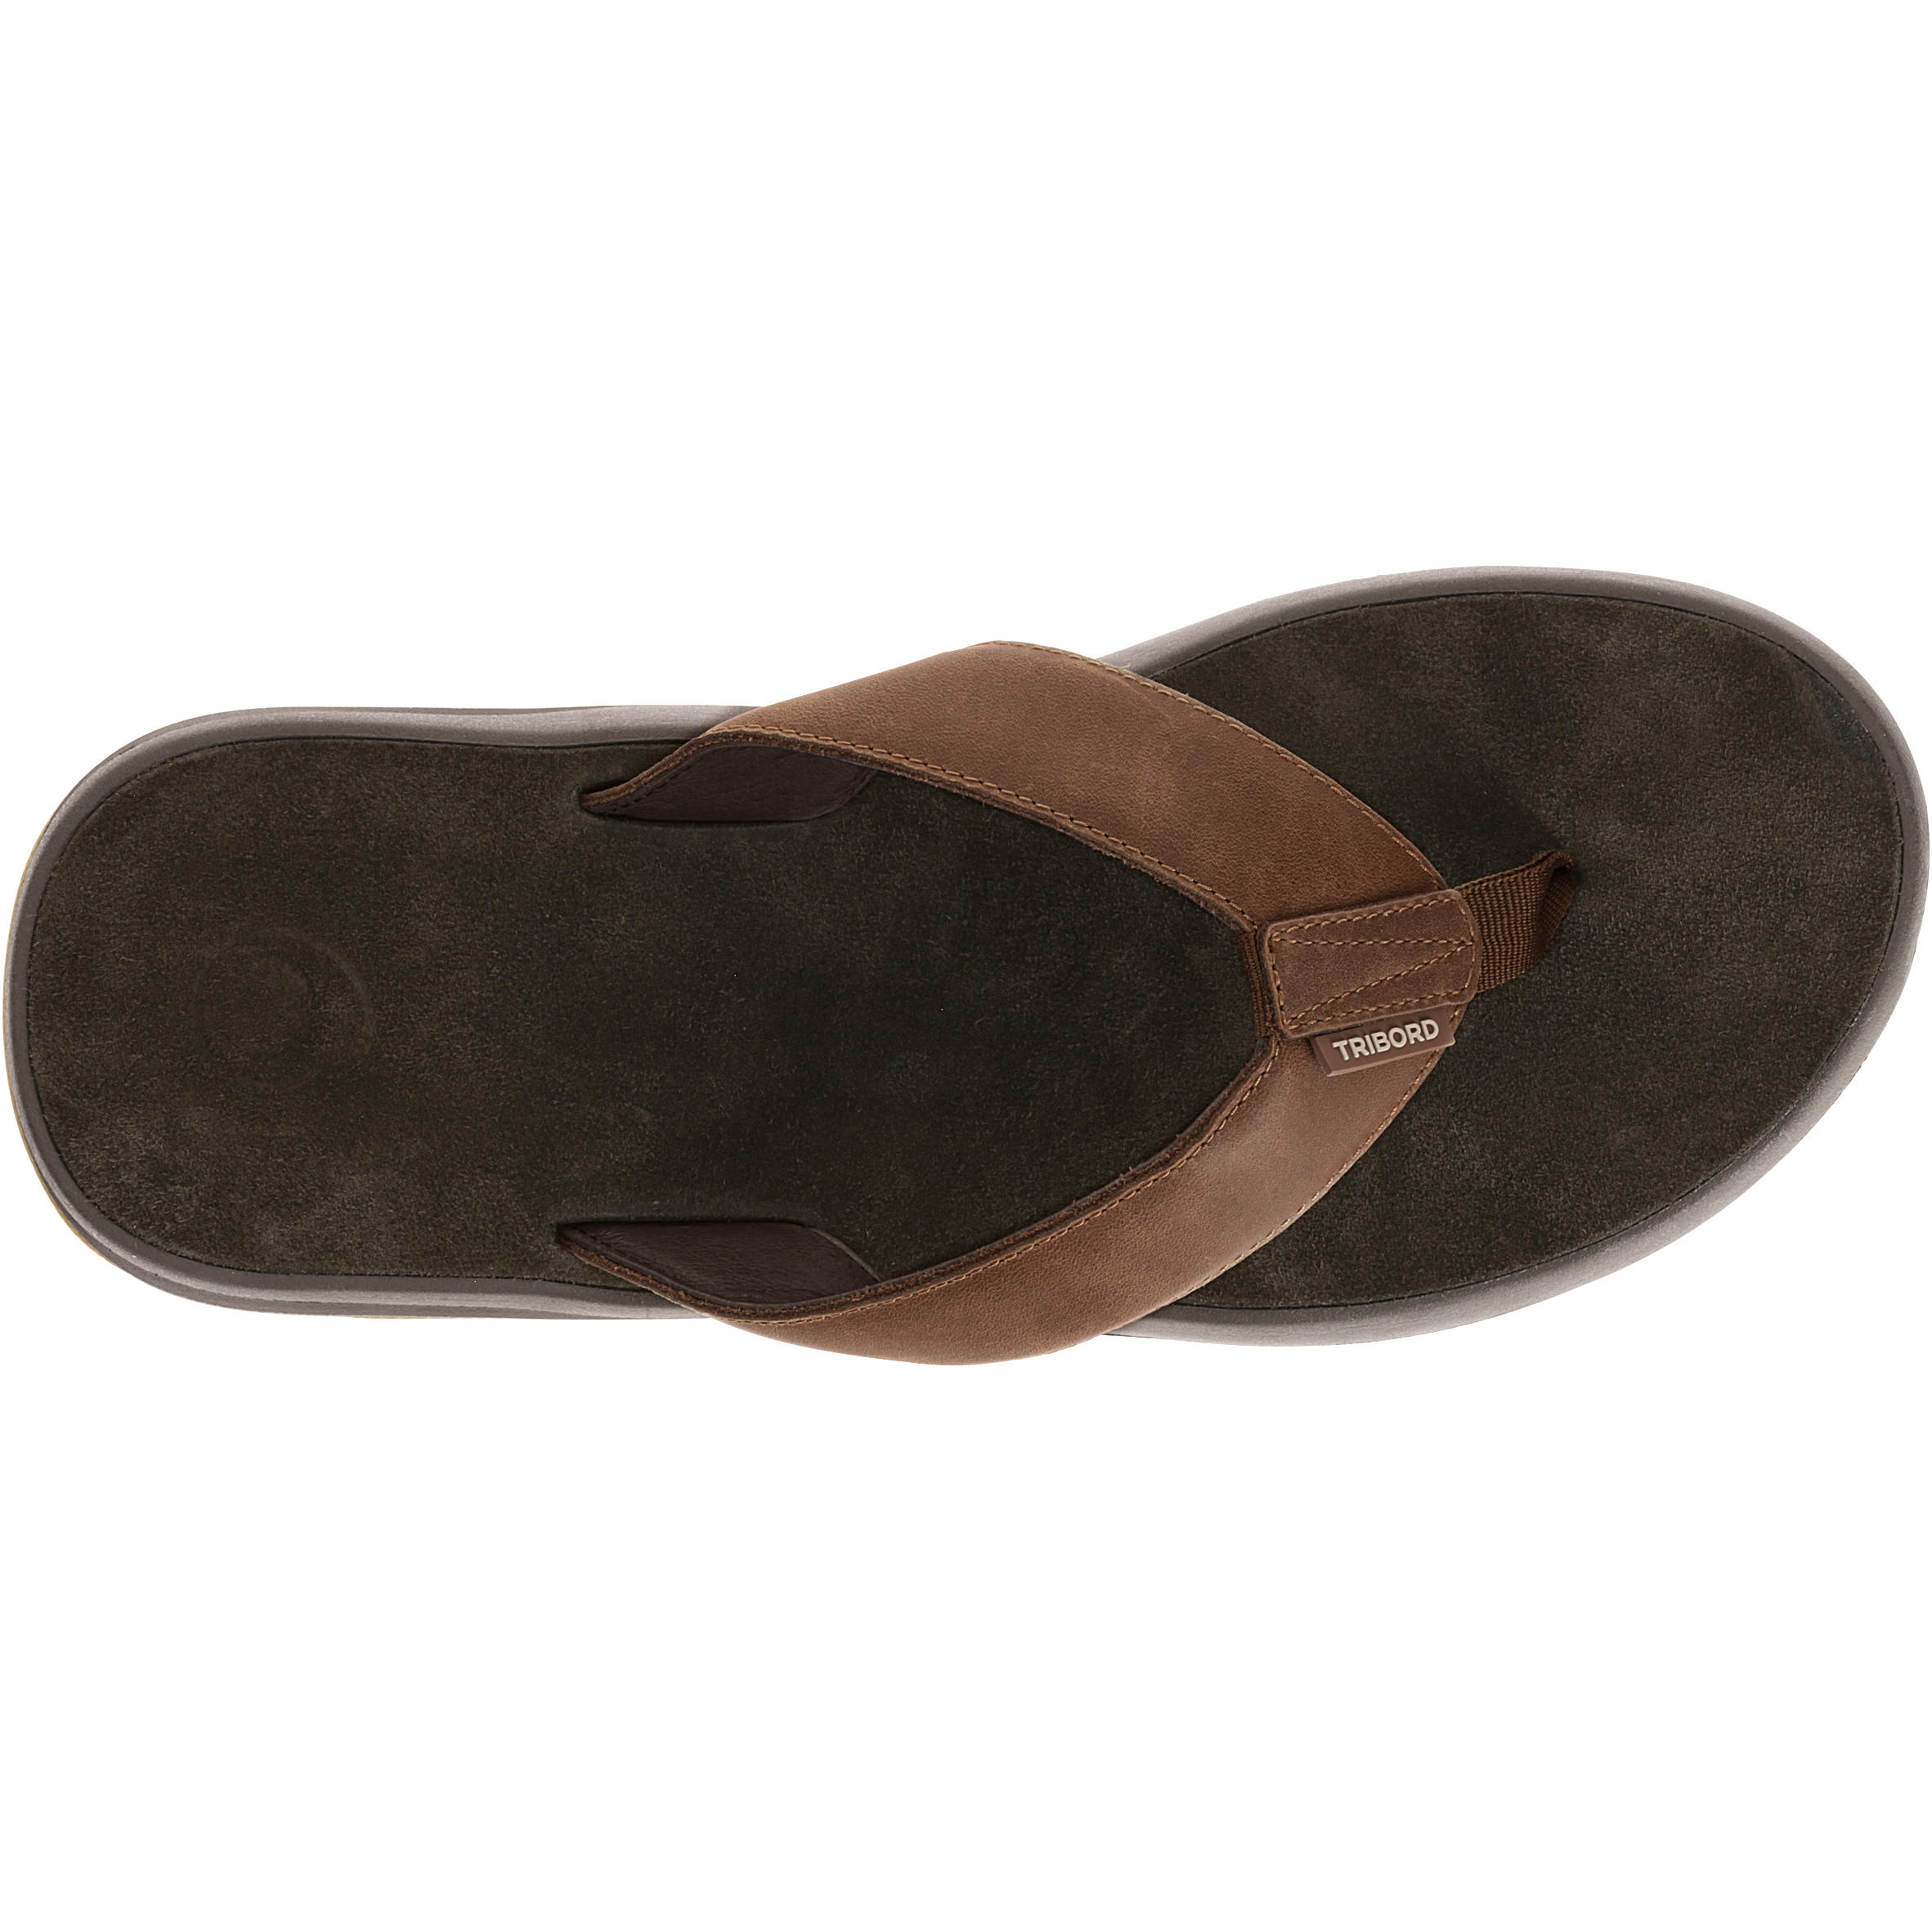 Tongs homme TO 950 M Cuir Brun